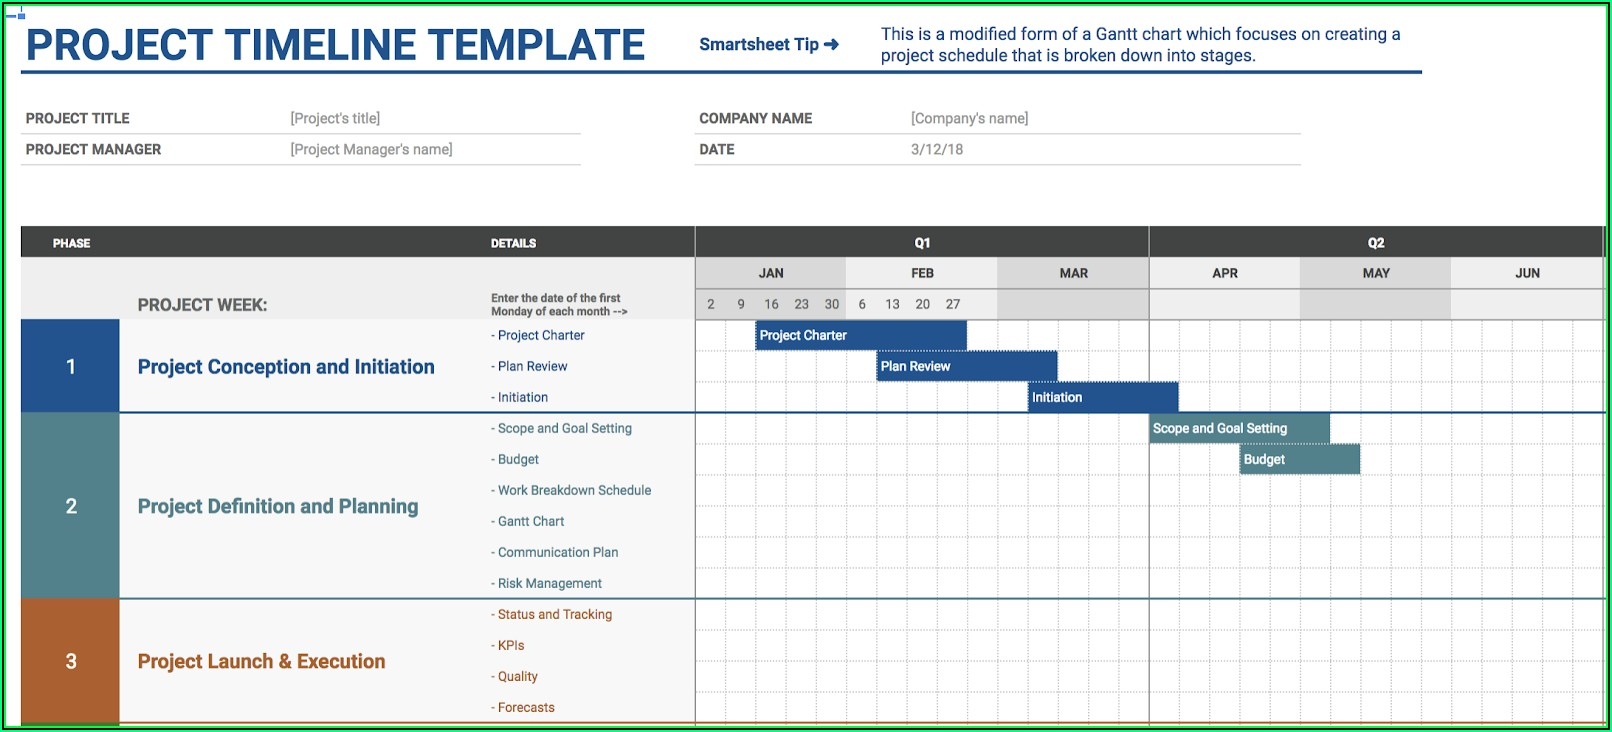 Project Tracking Template Google Sheets